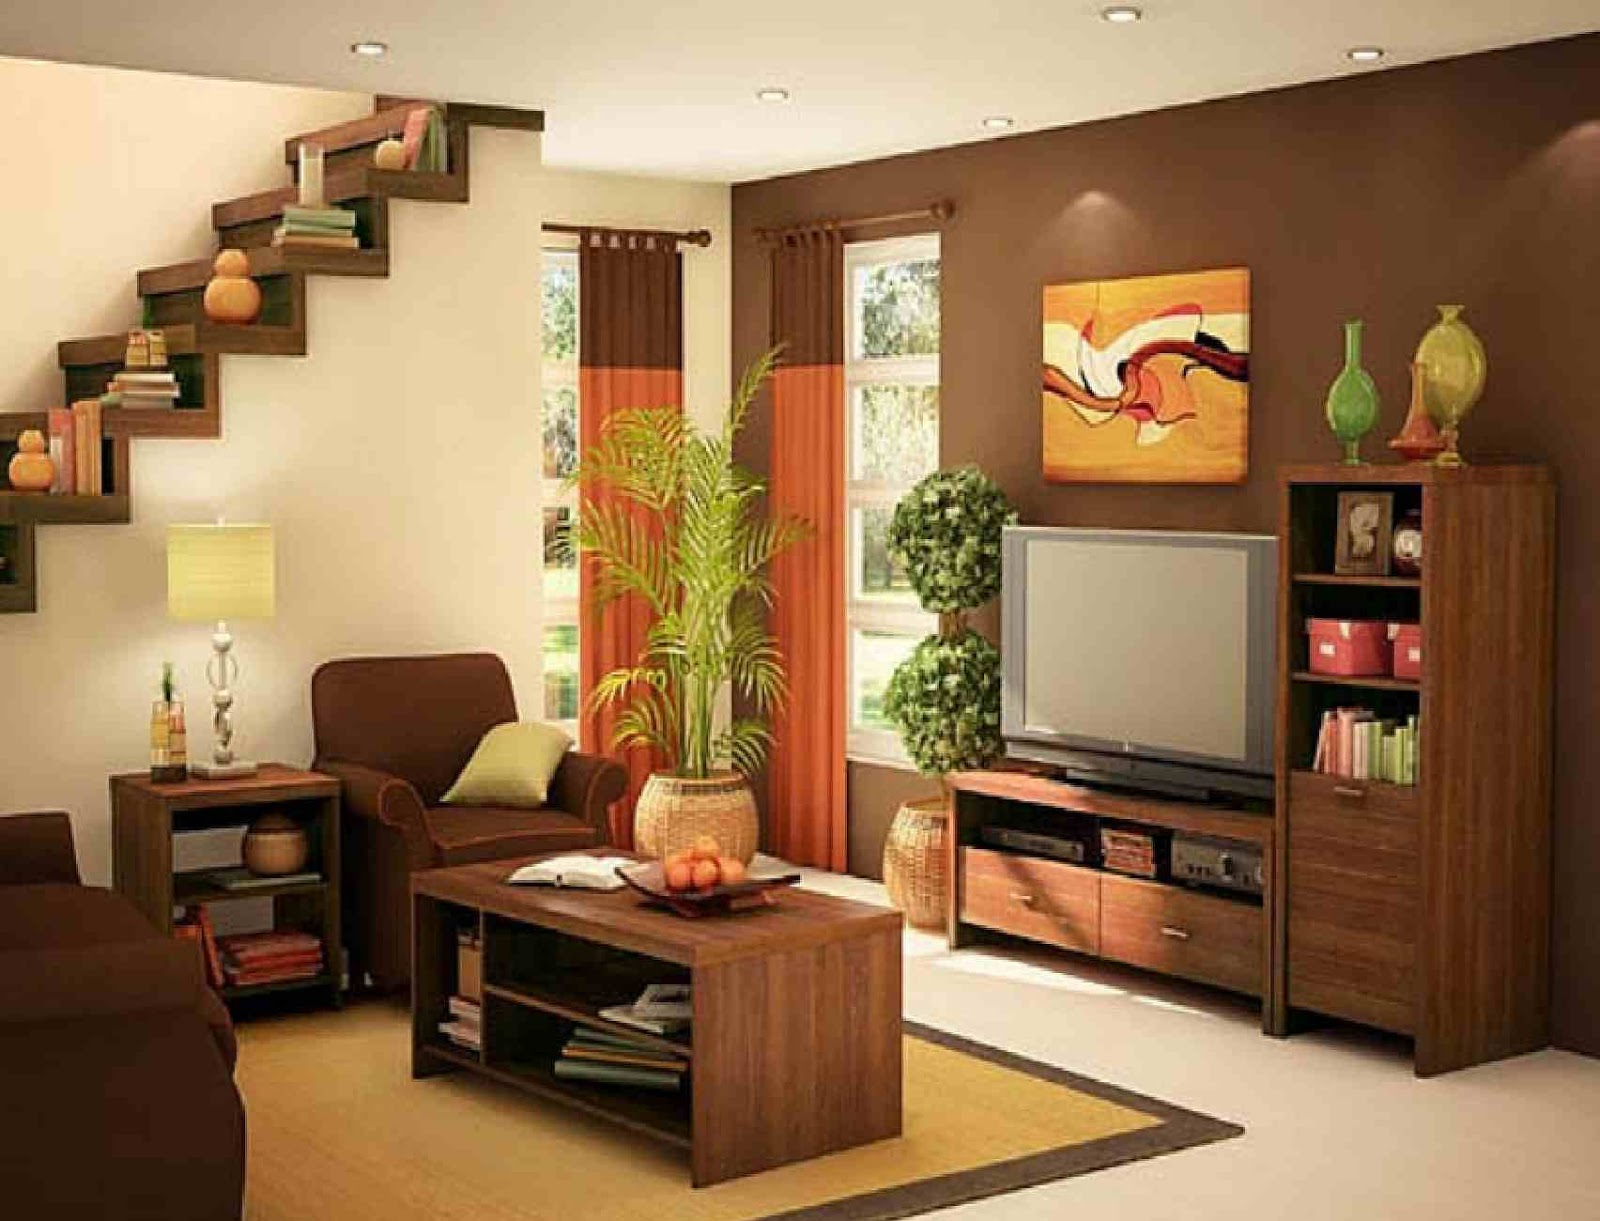 Home interior designs simple living room designs for Simple living room decor